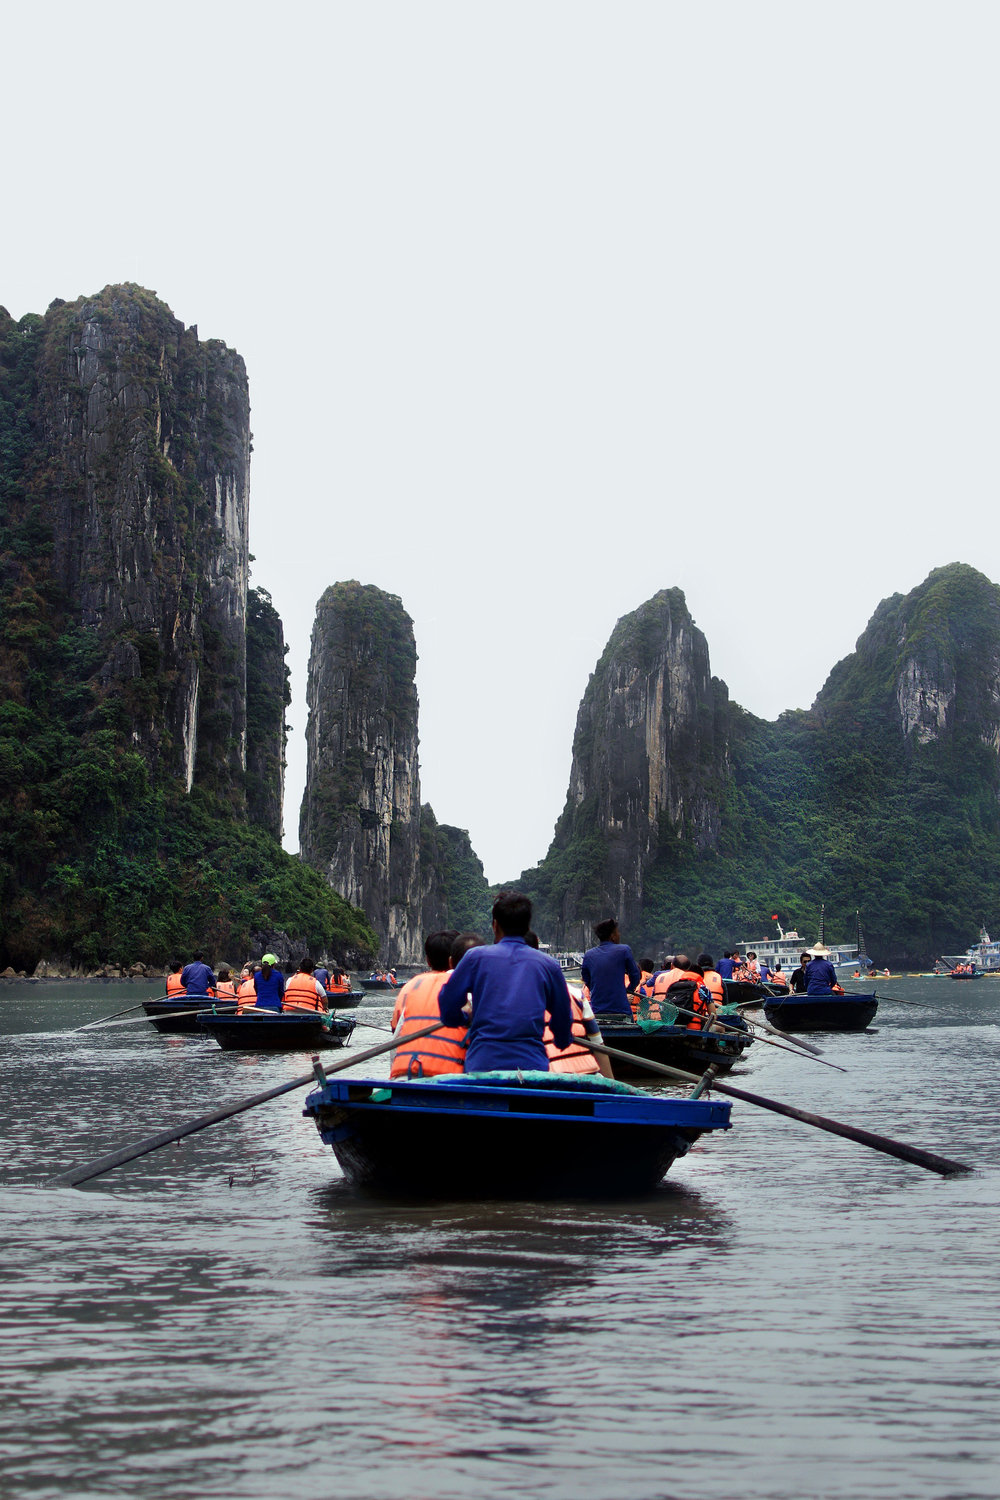 RIDING THE BAMBOO BOATS TO EXPLORE THE WATER GROTTOES